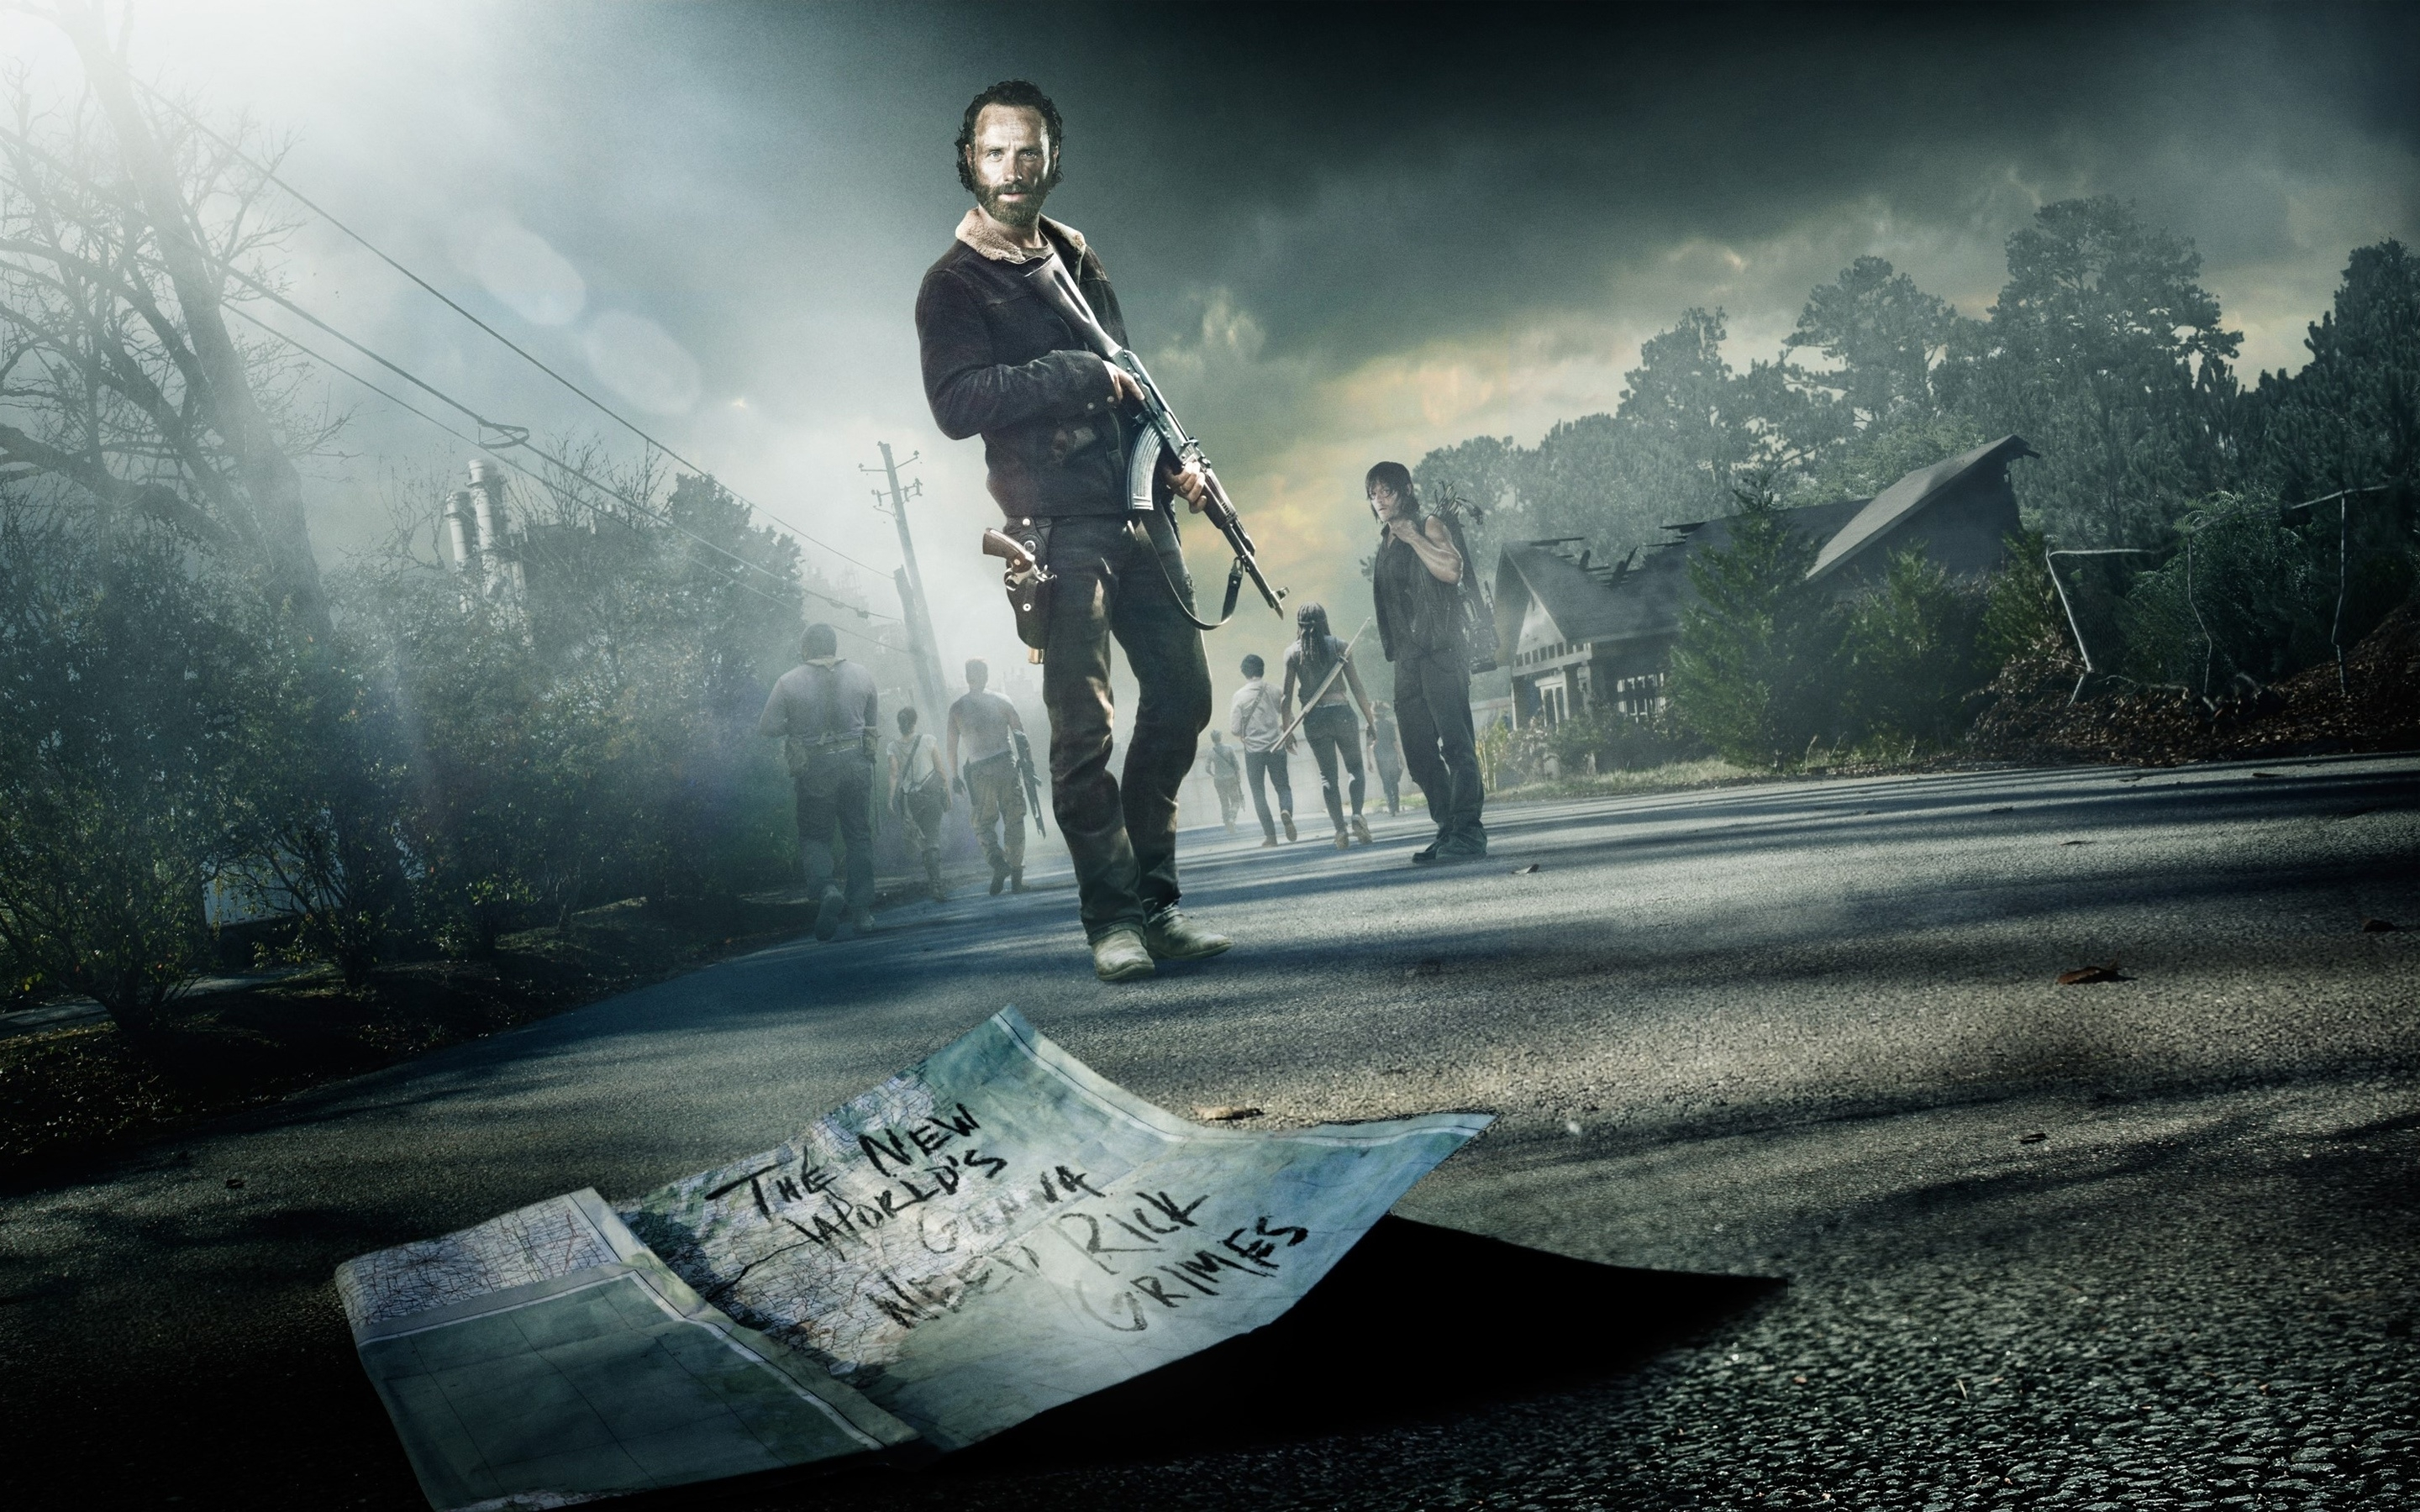 10 Latest The Walking Dead Hd Wallpaper FULL HD 1920×1080 For PC Background